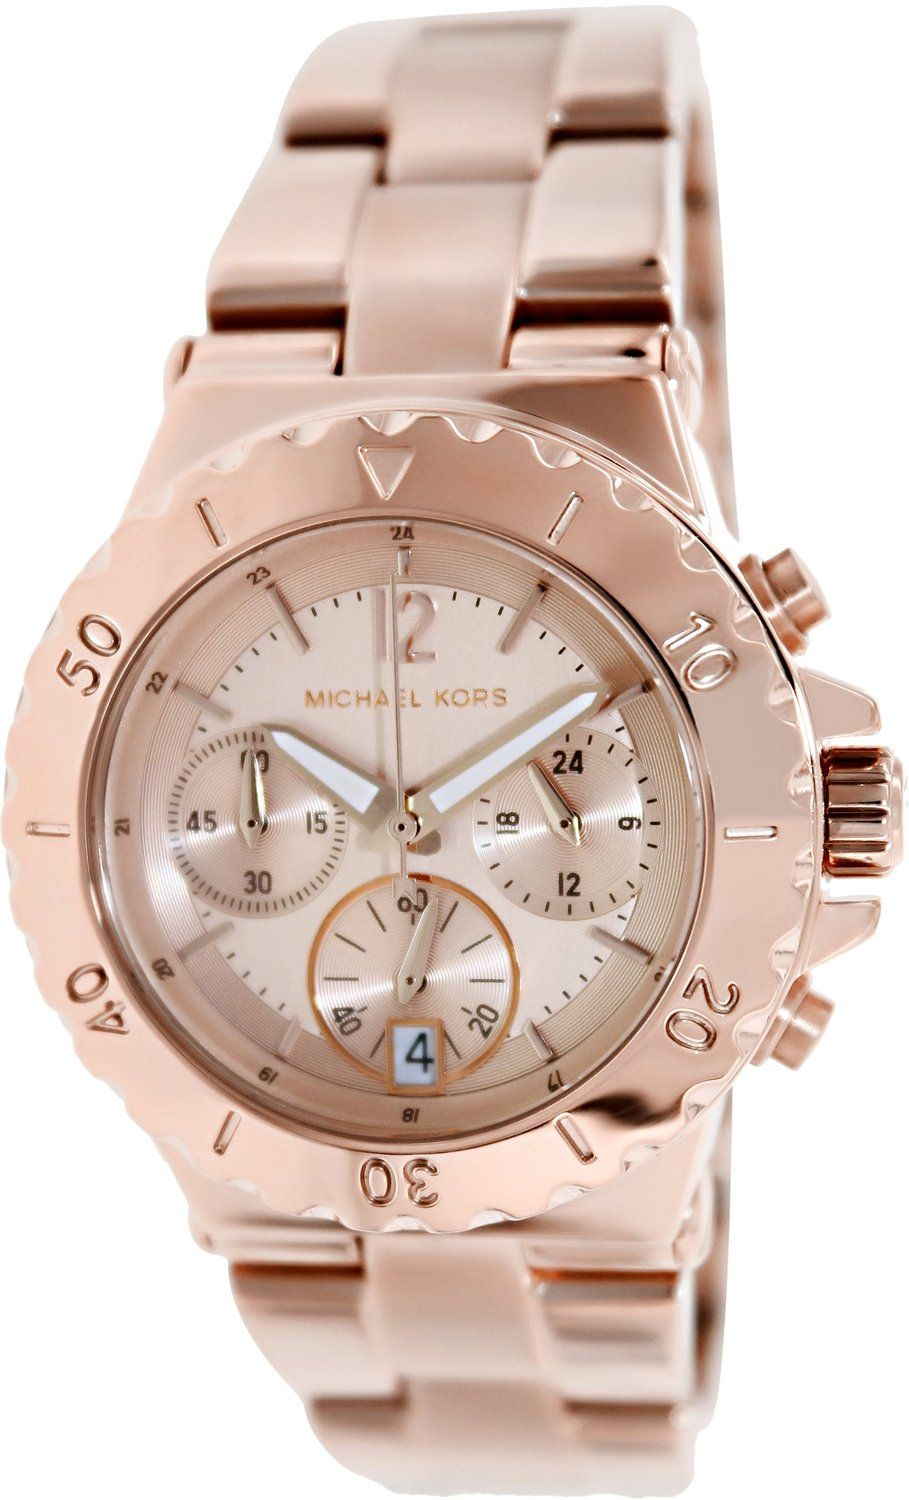 Pin by JuliaVargas2017 on Top 10 Michael Kors Watches etc